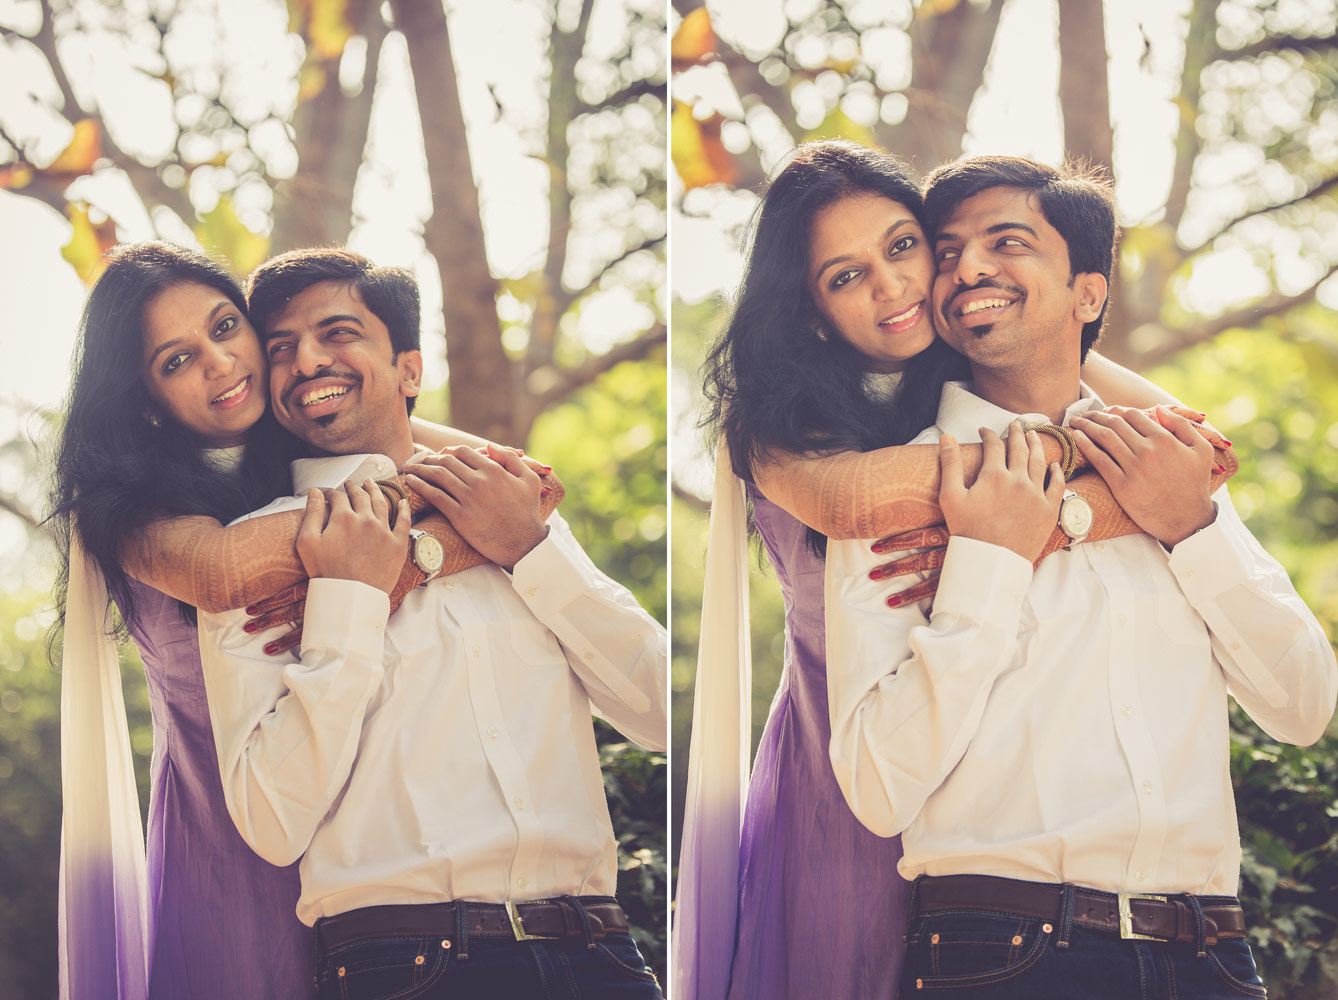 JKC_Couple-Outdoor-Shoot-at-Bangalore_Pre-Post-Candid-Wedding-Photography_0014